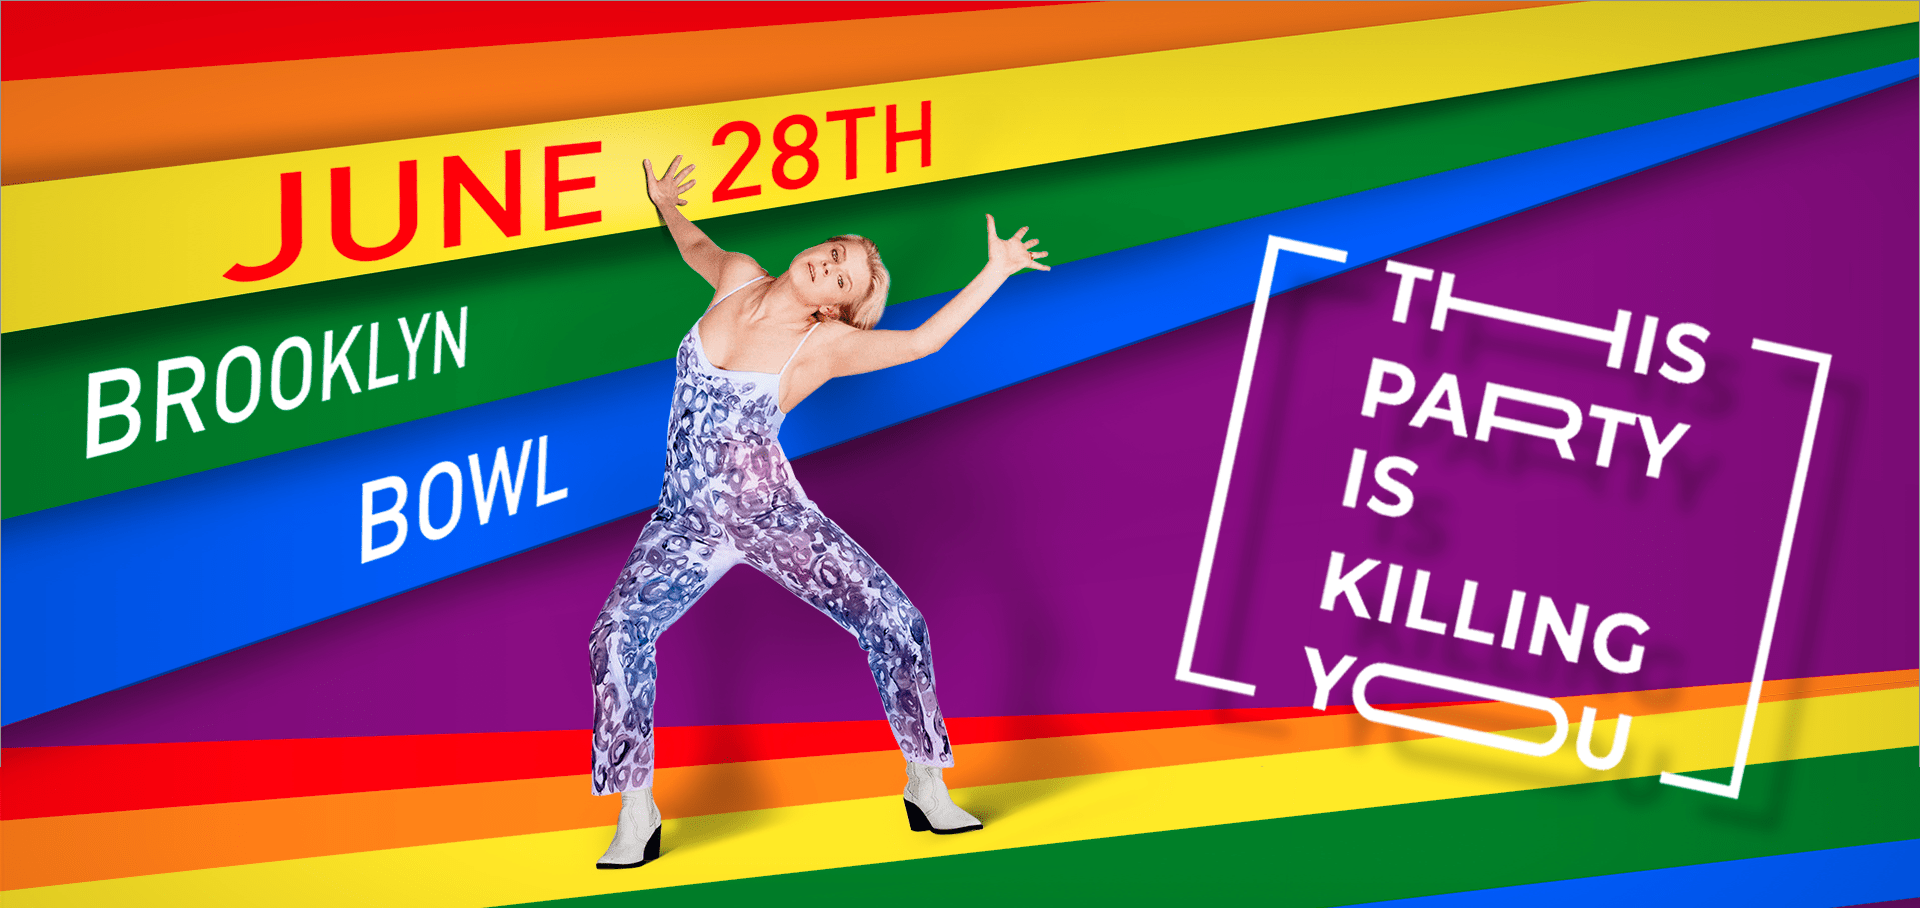 This Party Is Killing You - NYC PRIDE Edition